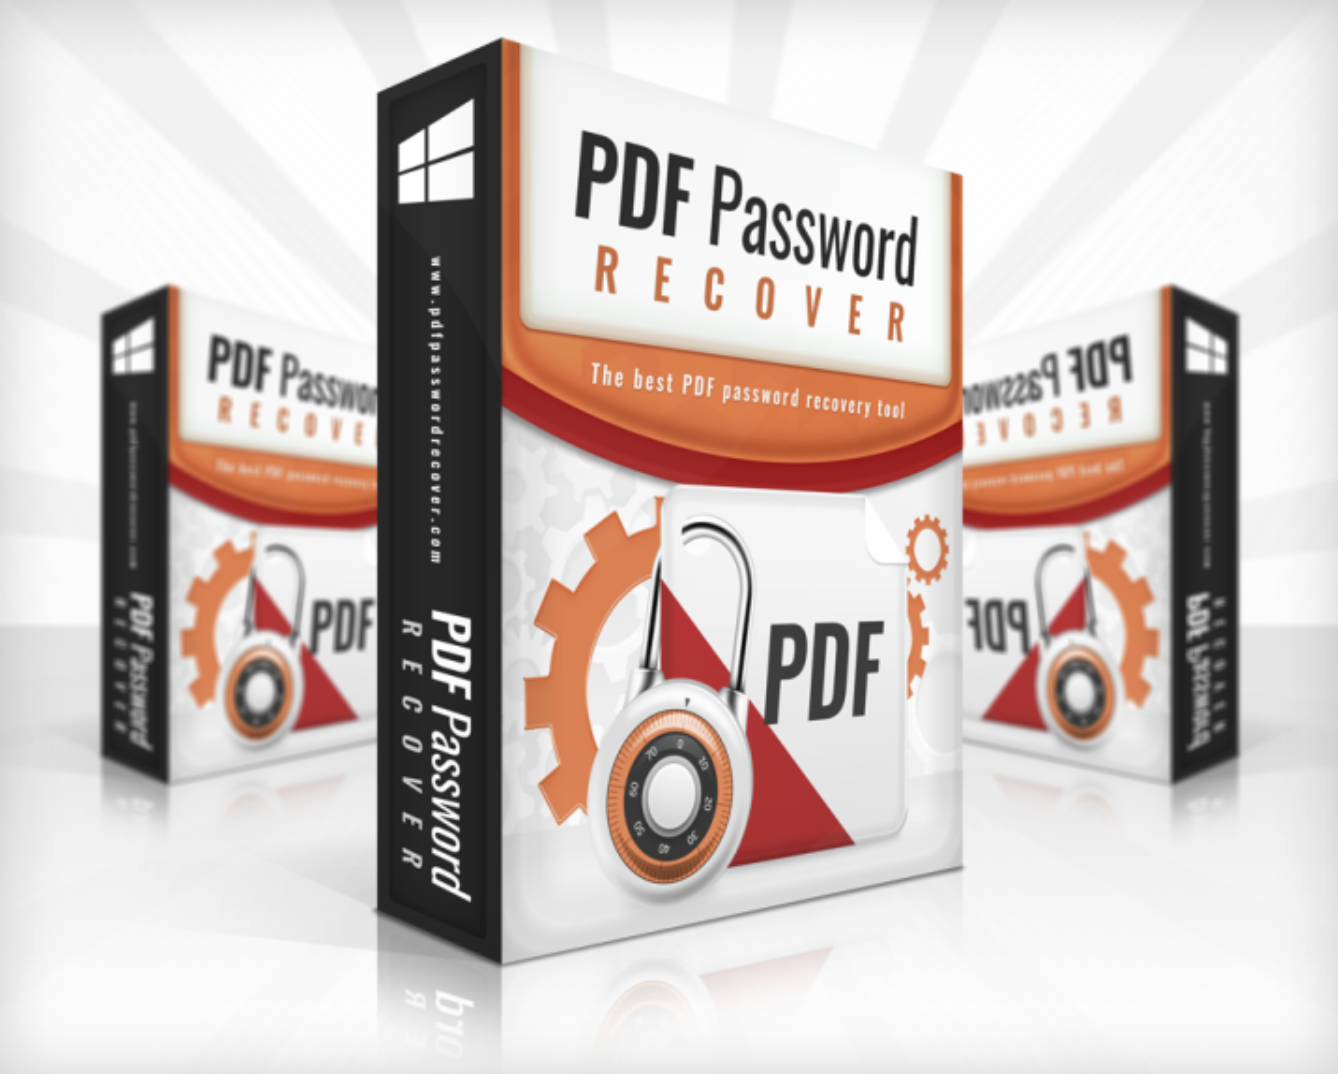 [Free Giveaway] PDF Password Recover v4.0 License Code for Lifetime - Recover or Remove Passwords from PDF